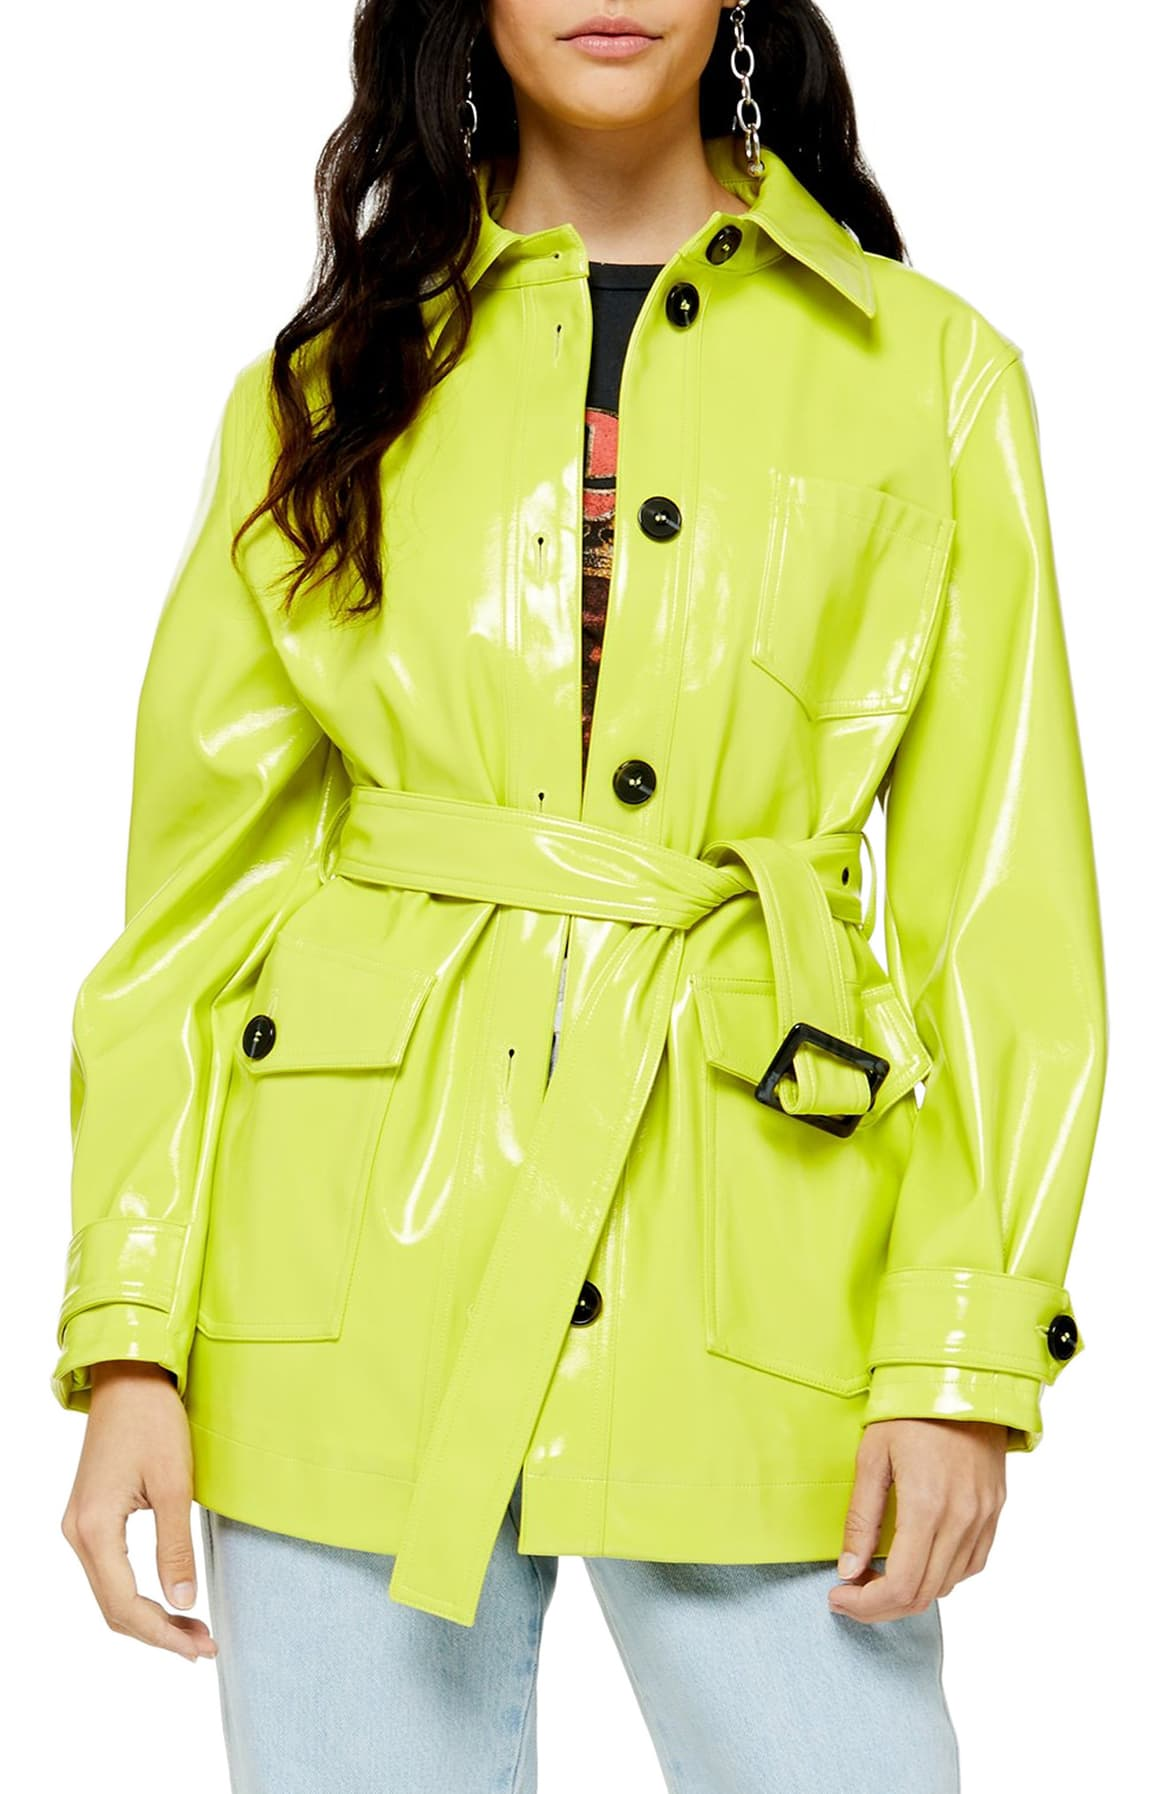 You'll stand out in a crowd in this neon rain coat, that's for sure.{ } Go full '80s with this $110 statement piece. (Image: Nordstrom){ }